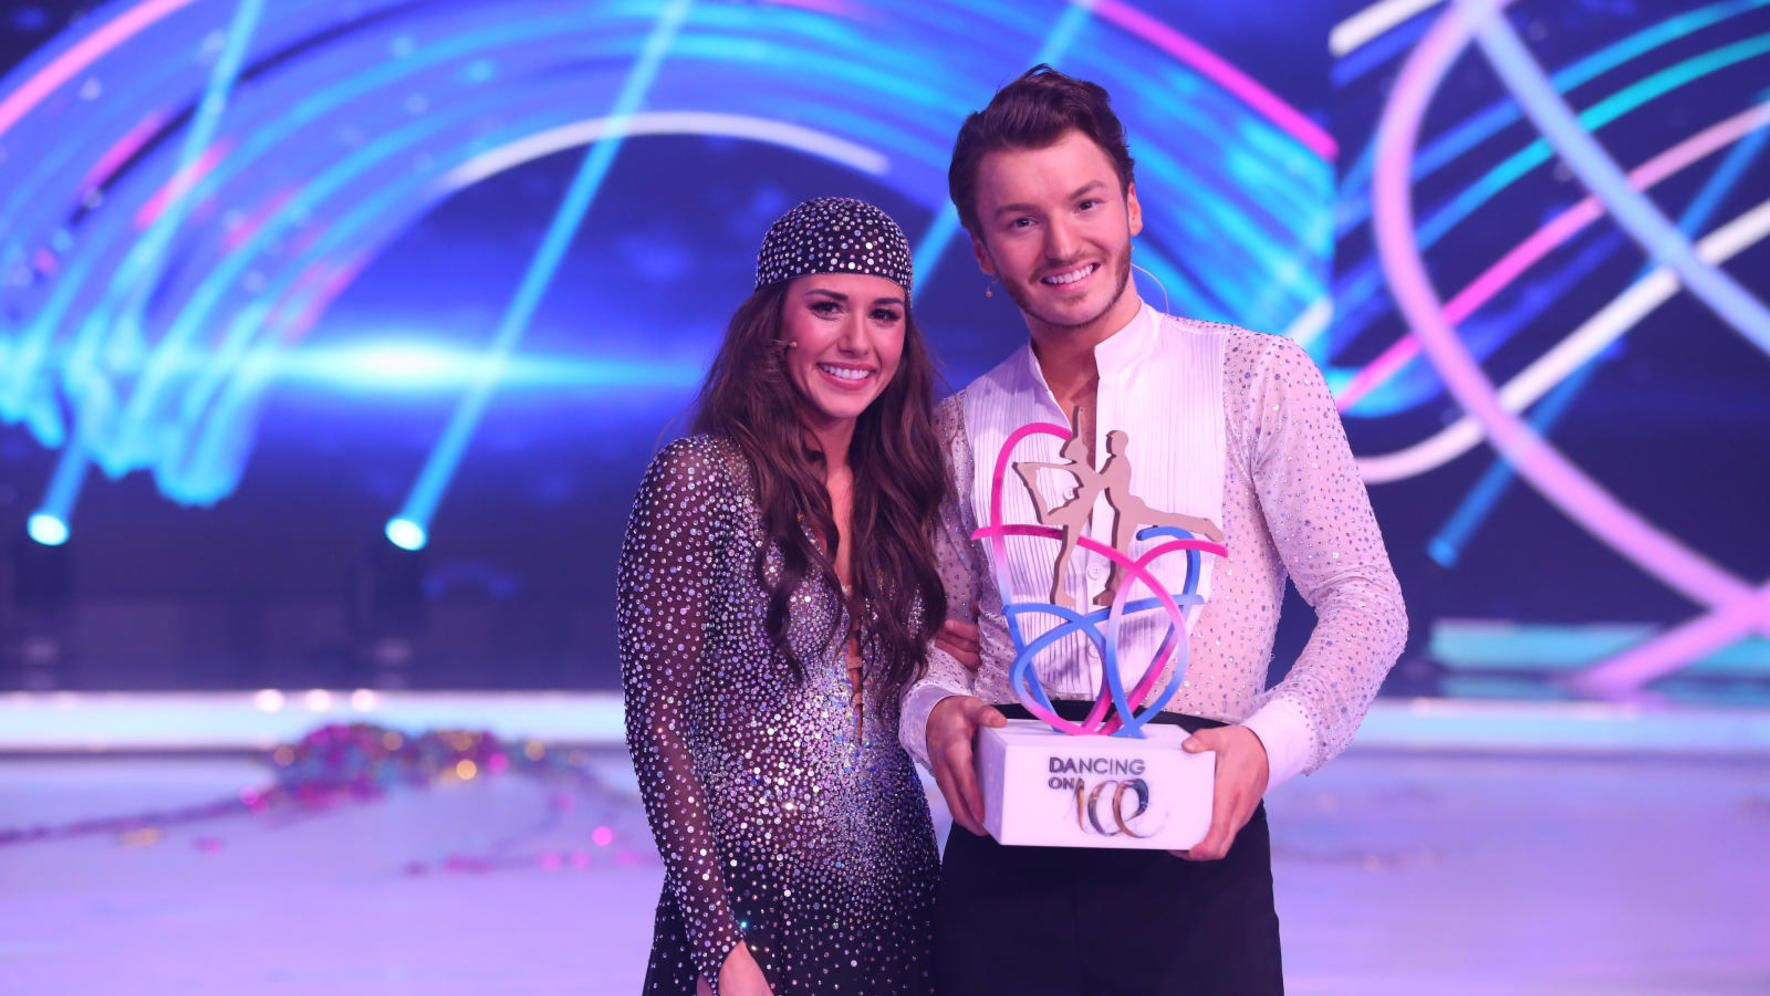 Sarah Lombardi gewinnt «Dancing on Ice»